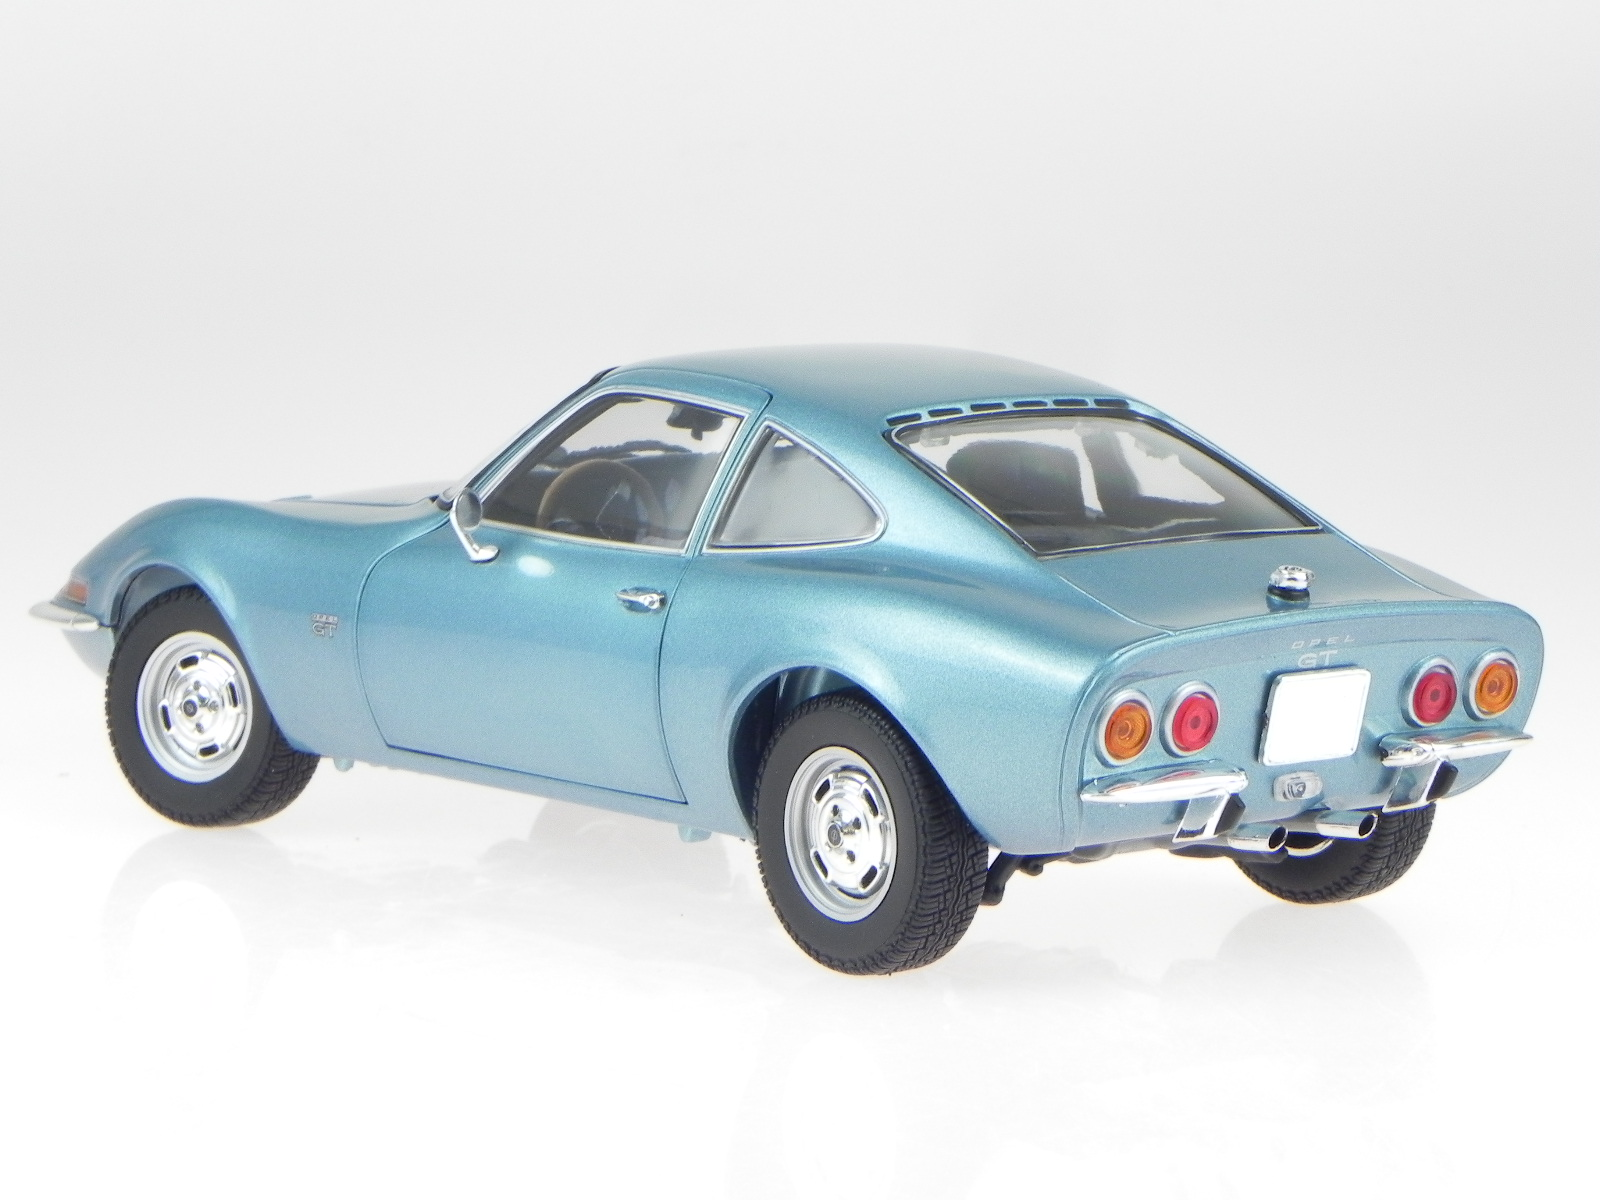 opel gt 1972 blau metallic modellauto 180049030 minichamps. Black Bedroom Furniture Sets. Home Design Ideas